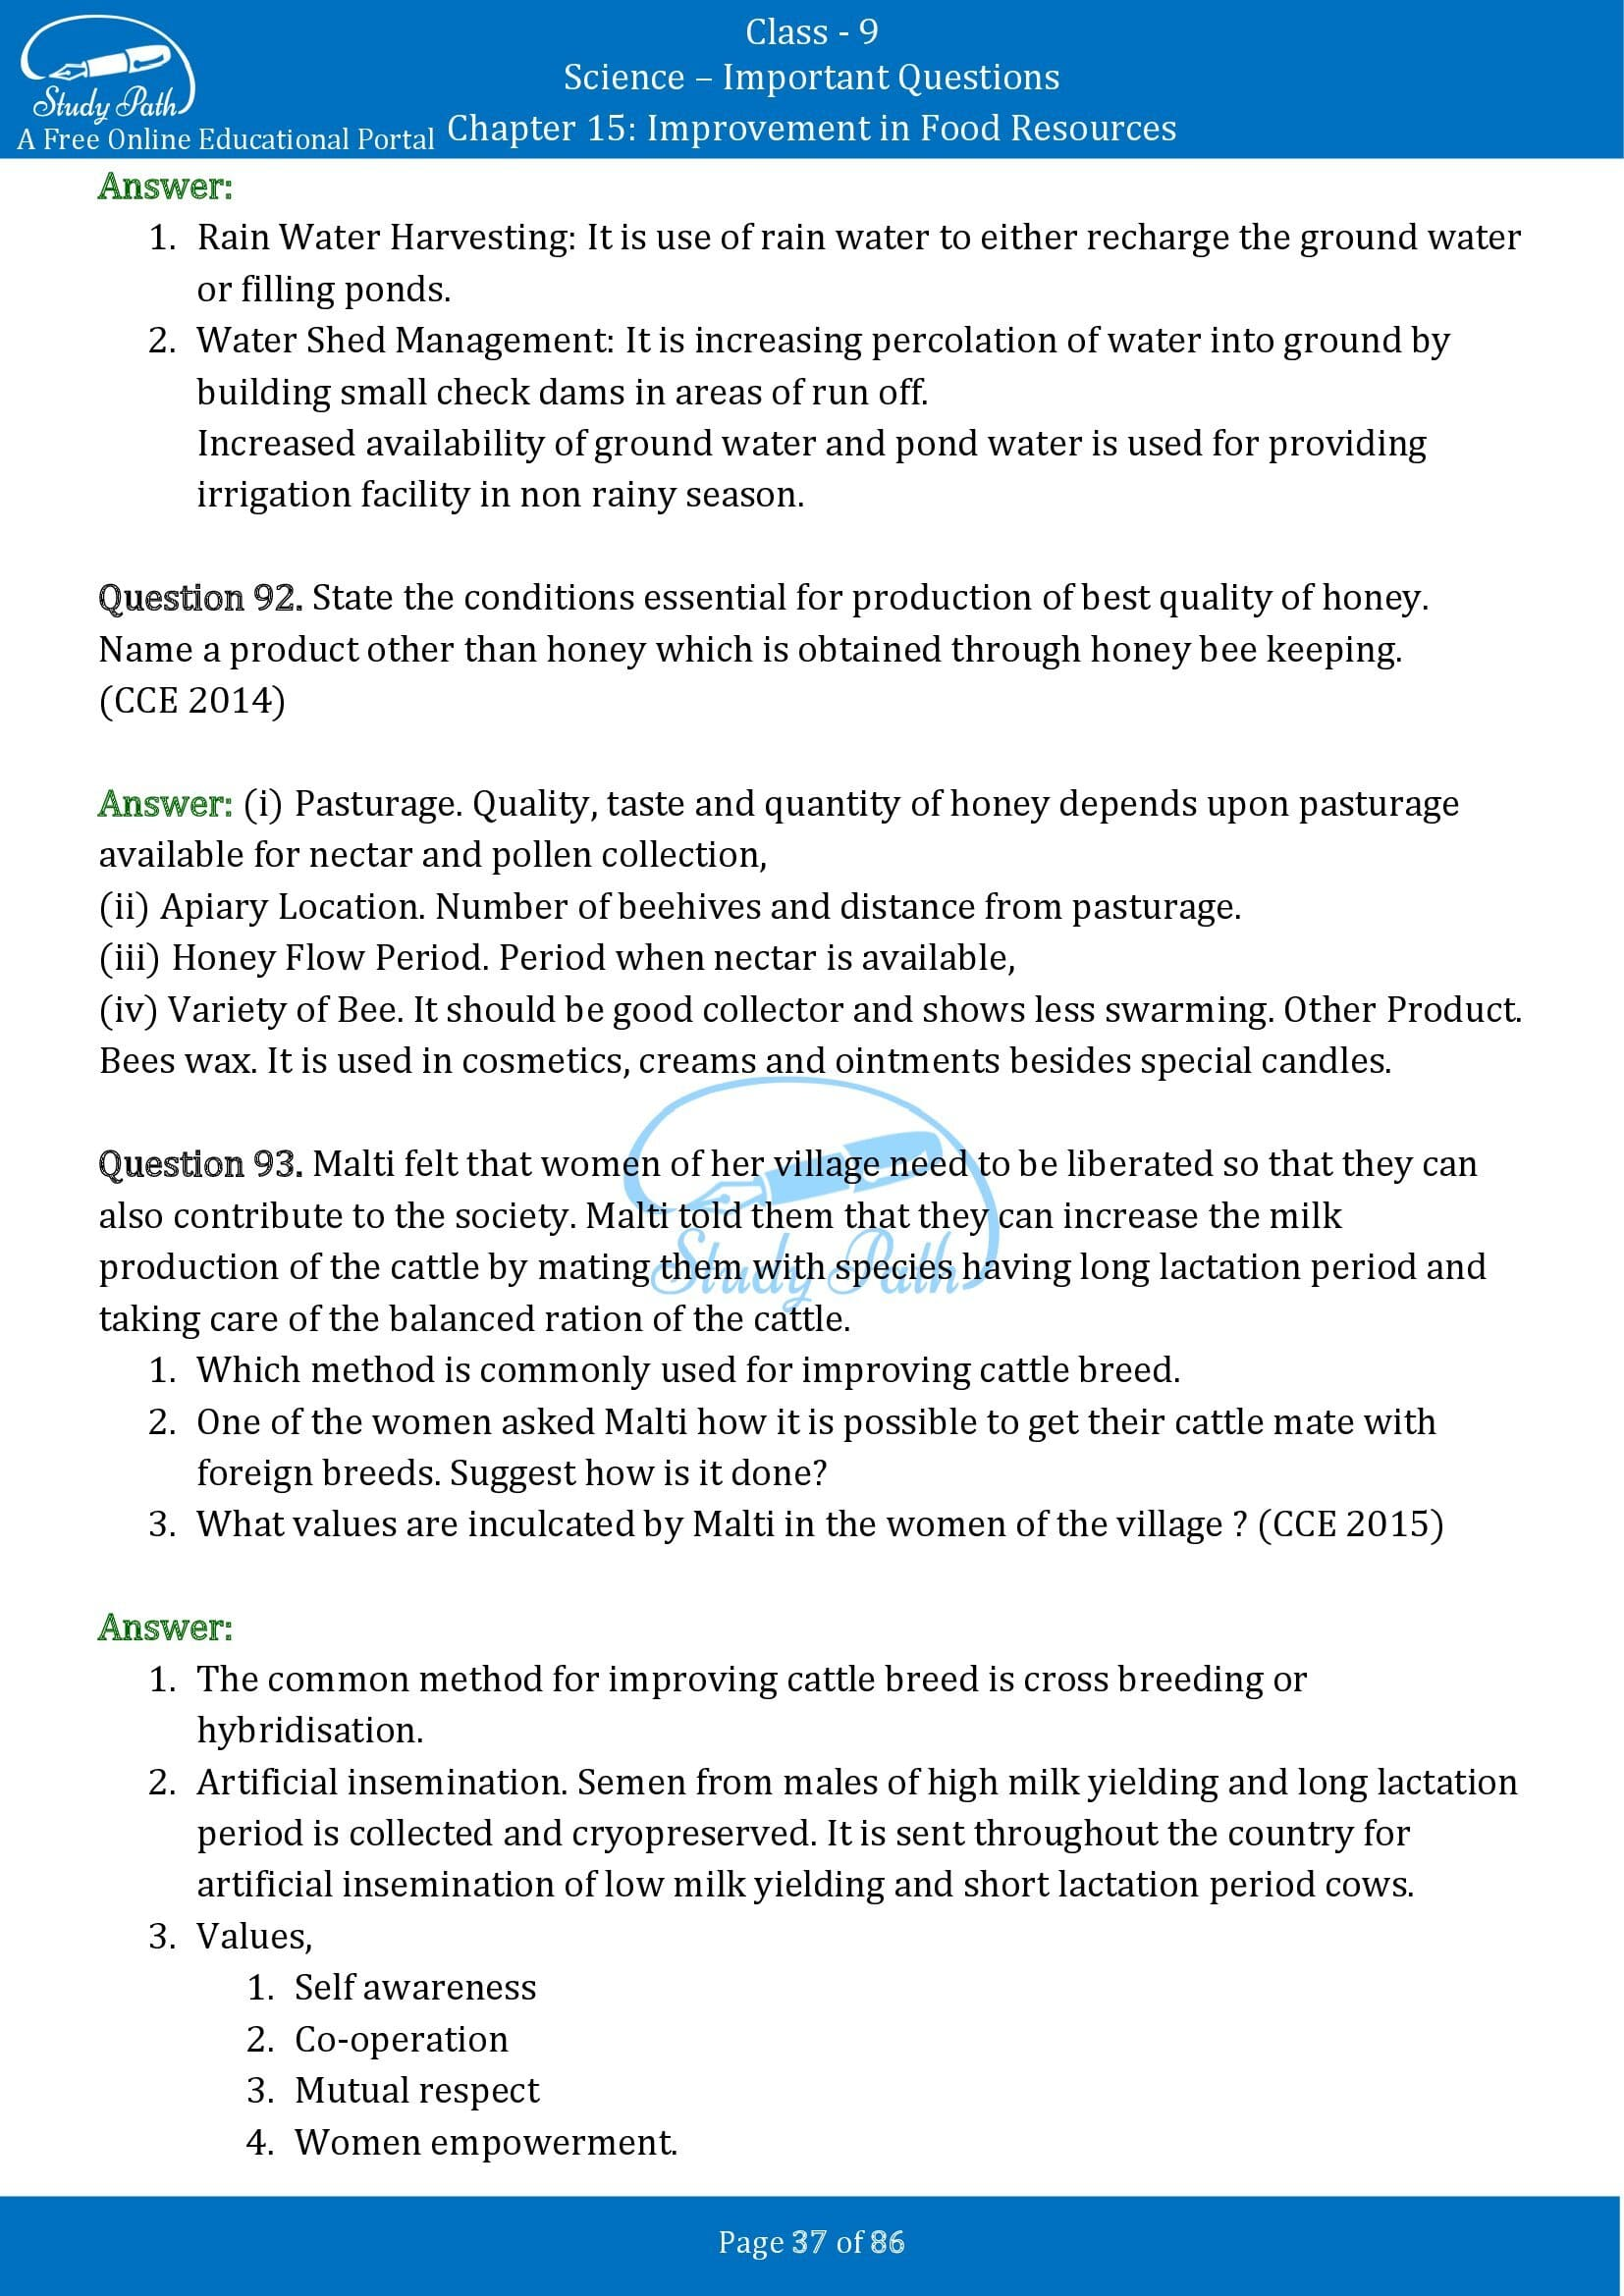 Important Questions for Class 9 Science Chapter 15 Improvement in Food Resources 00037